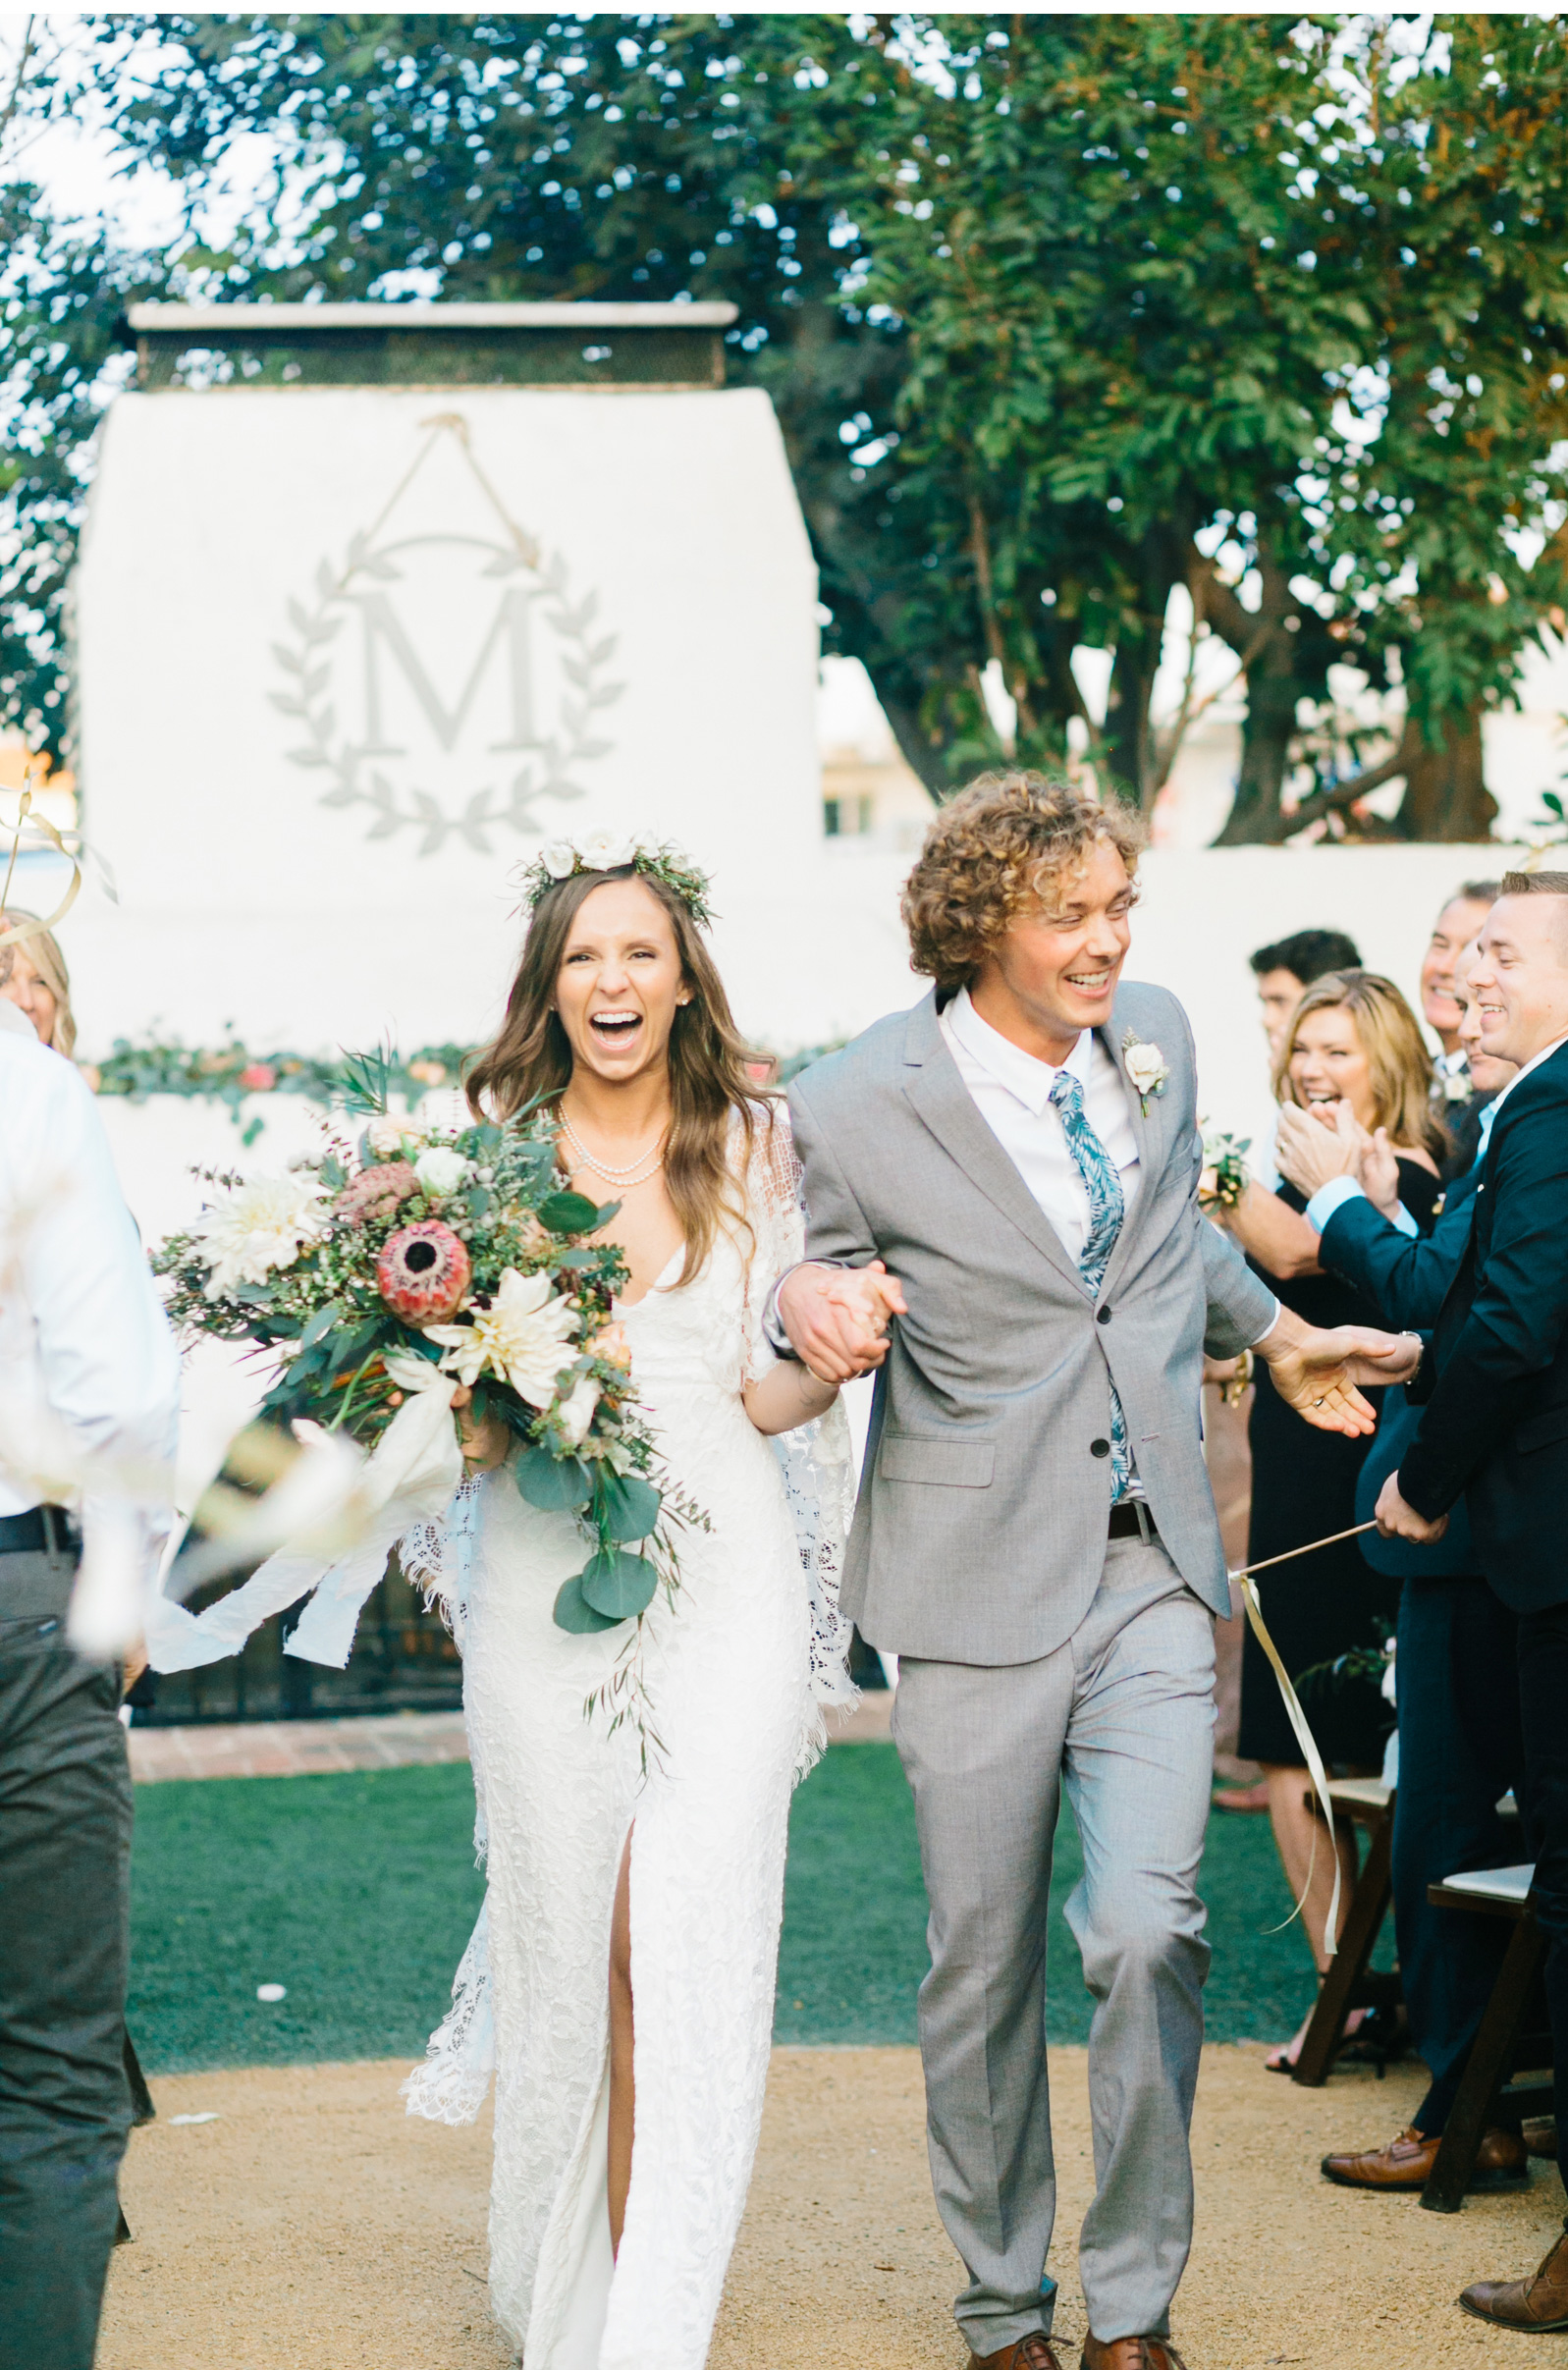 San-Clemente-Wedding-The-Casino-Natalie-Schutt-Photography_18.jpg